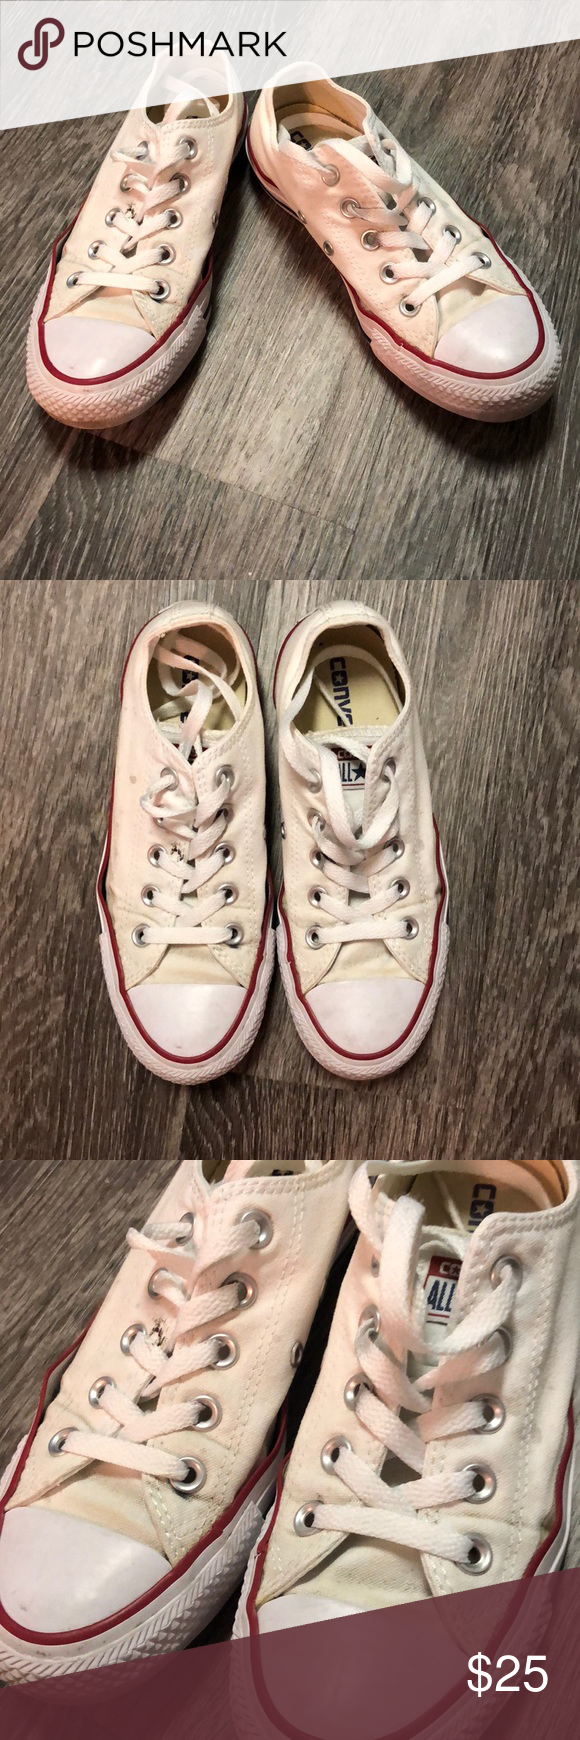 Worn Converse All Star size 5.5 Converse All Star white sneakers. Low top. Laces in good condition. Shoes are worn as shown by discoloration and minor gap near the toe, but still in good enough walking condition. Size 5.5, I typically wear a size 6 but these fit me. Converse Shoes #whiteallstars